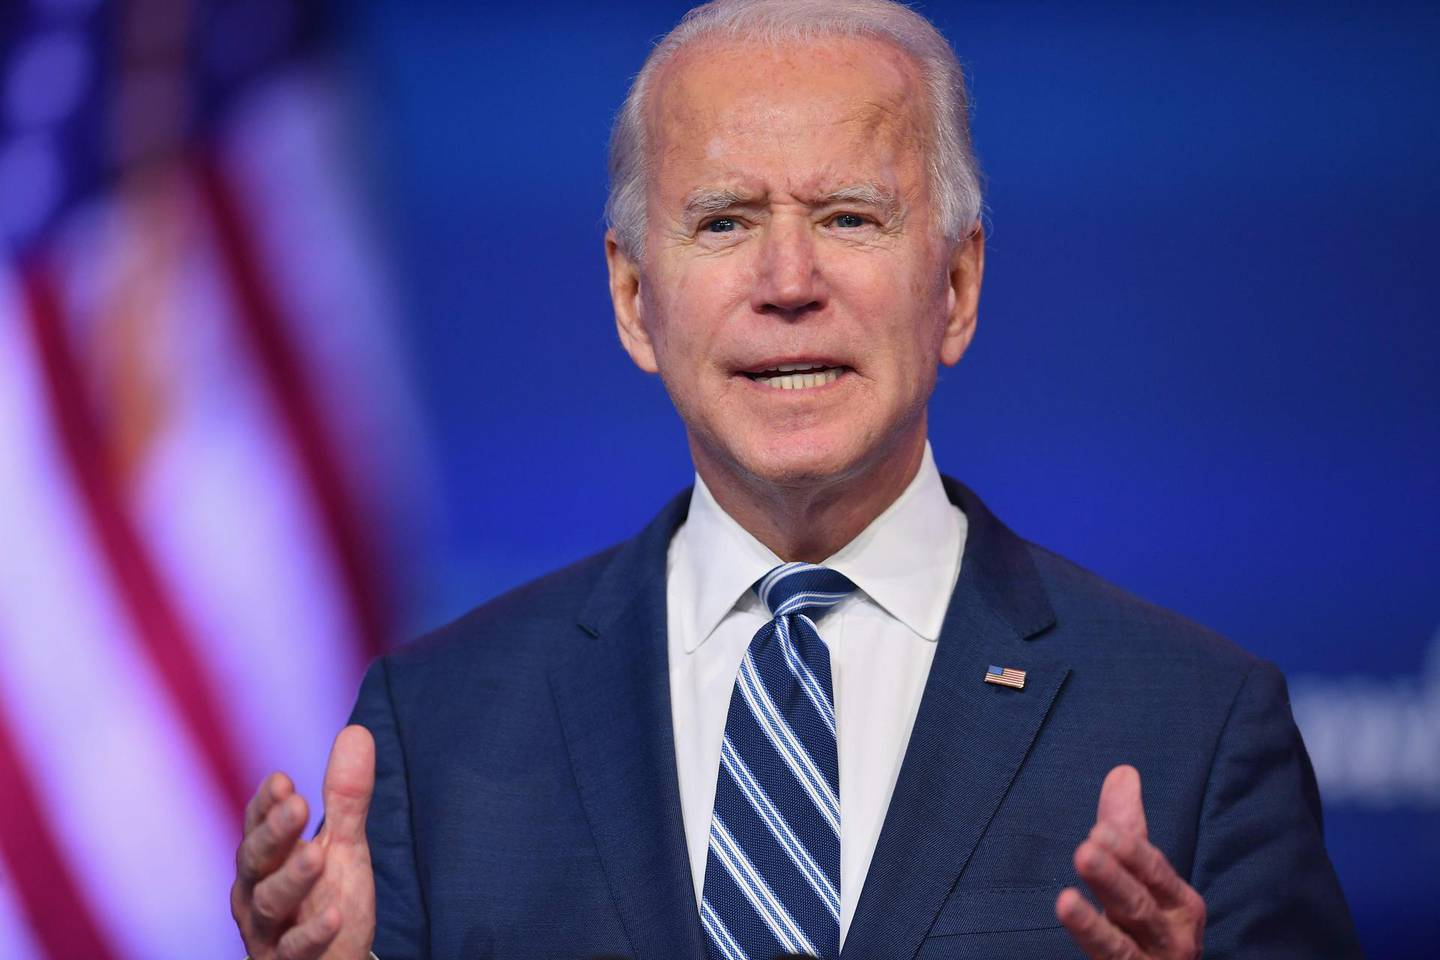 """(FILES) In this file photo taken on November 10, 2020 US President-elect Joe Biden delivers remarks at The Queen in Wilmington, Delaware. After Donald Trump in his first week as president spoke to Australia's prime minister, leaks of  the call left many dumbfounded, with the new US leader haranguing and hanging up on the close ally. When Joe Biden spoke by phone Thursday with Prime Minister Scott Morrison, the president-elect's office said Biden hoped to work with him on """"many common challenges"""" and the Australian leader said he would forward a study on how his country fought Covid-19 through contact tracing. Following four years of presidential pique and chronic chaos in dealing with foreign leaders, Biden has already signaled a reversal -- he is making US diplomacy predictable, even dull, again. / AFP / Angela Weiss"""